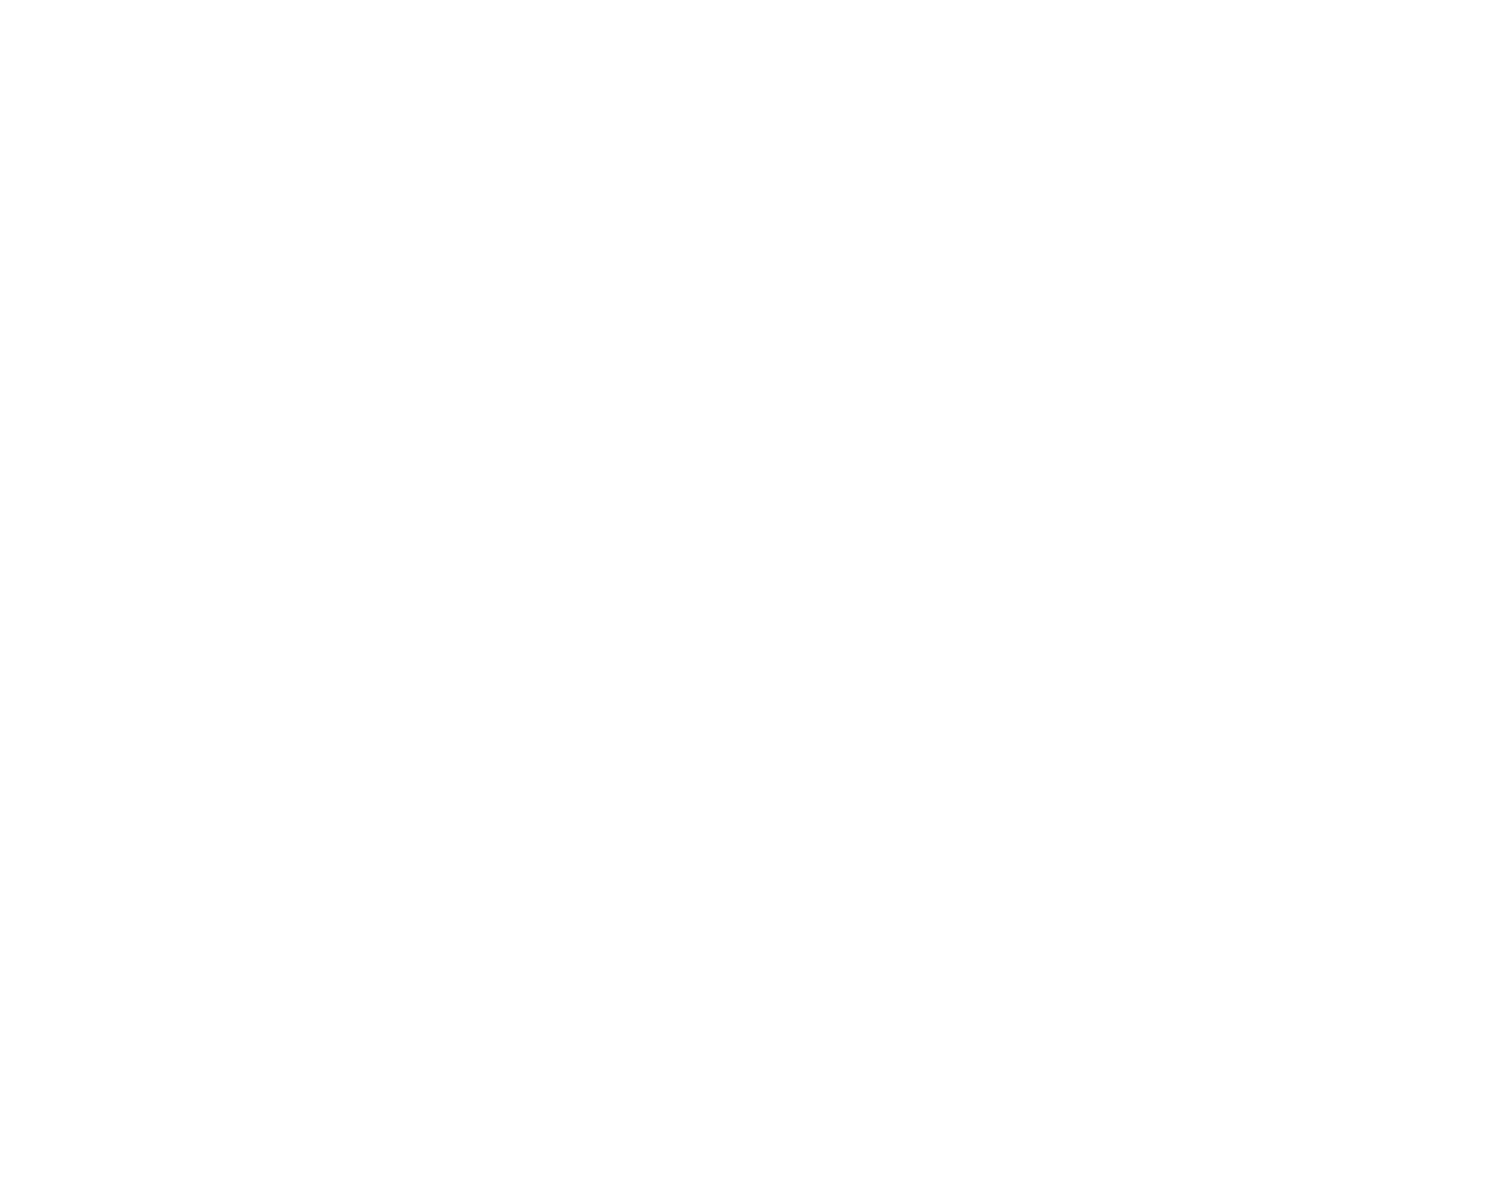 PARNASSIAN DESIGN & STAGING